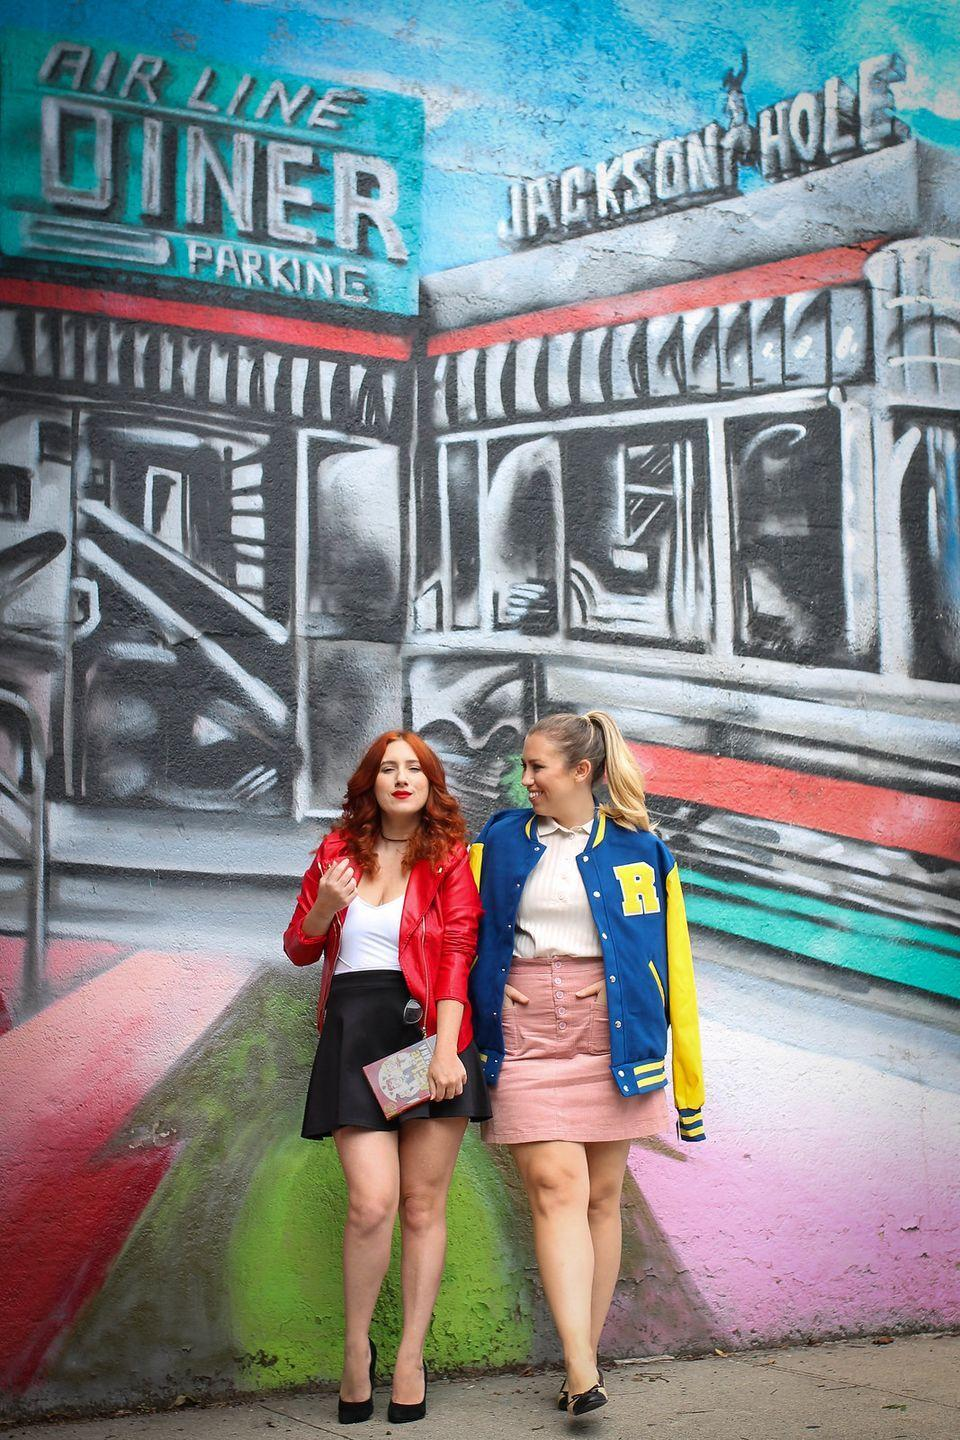 """<p><em>Riverdale</em>, the hit show based on the Archie Comics, will be returning for a fifth season this year on the CW, so now's the time for your teen to grab her bestie and make like Betty and Cheryl. </p><p><strong>Get the tutorial at <a href=""""http://livingaftermidnite.com/2018/10/easy-riverdale-halloween-costumes.html"""" rel=""""nofollow noopener"""" target=""""_blank"""" data-ylk=""""slk:Living After Midnight"""" class=""""link rapid-noclick-resp"""">Living After Midnight</a>.</strong></p><p><a class=""""link rapid-noclick-resp"""" href=""""https://www.amazon.com/Archie-APA-Riverdale-Varsity-Jacket/dp/B0766GXH65/ref=asc_df_B0766GXH65/?tag=syn-yahoo-20&ascsubtag=%5Bartid%7C10050.g.22118522%5Bsrc%7Cyahoo-us"""" rel=""""nofollow noopener"""" target=""""_blank"""" data-ylk=""""slk:SHOP RIVERDALE VARSITY JACKET"""">SHOP RIVERDALE VARSITY JACKET</a></p>"""